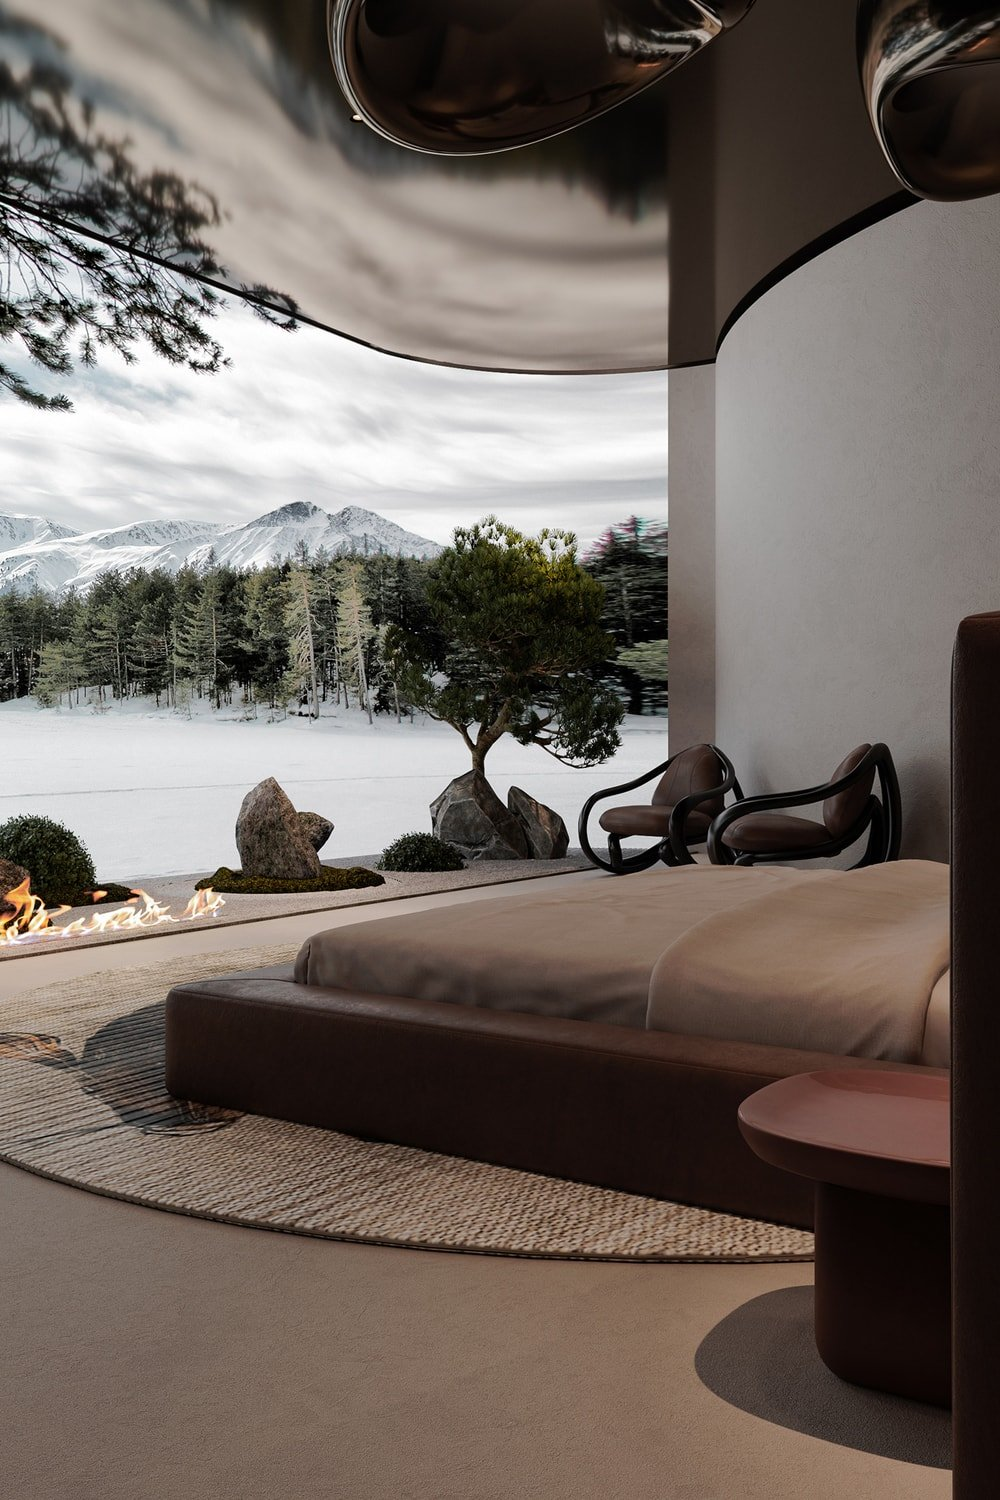 The curved wall across from the bed depicts an outdoor nature scene paired with a modern fire pit in the middle.